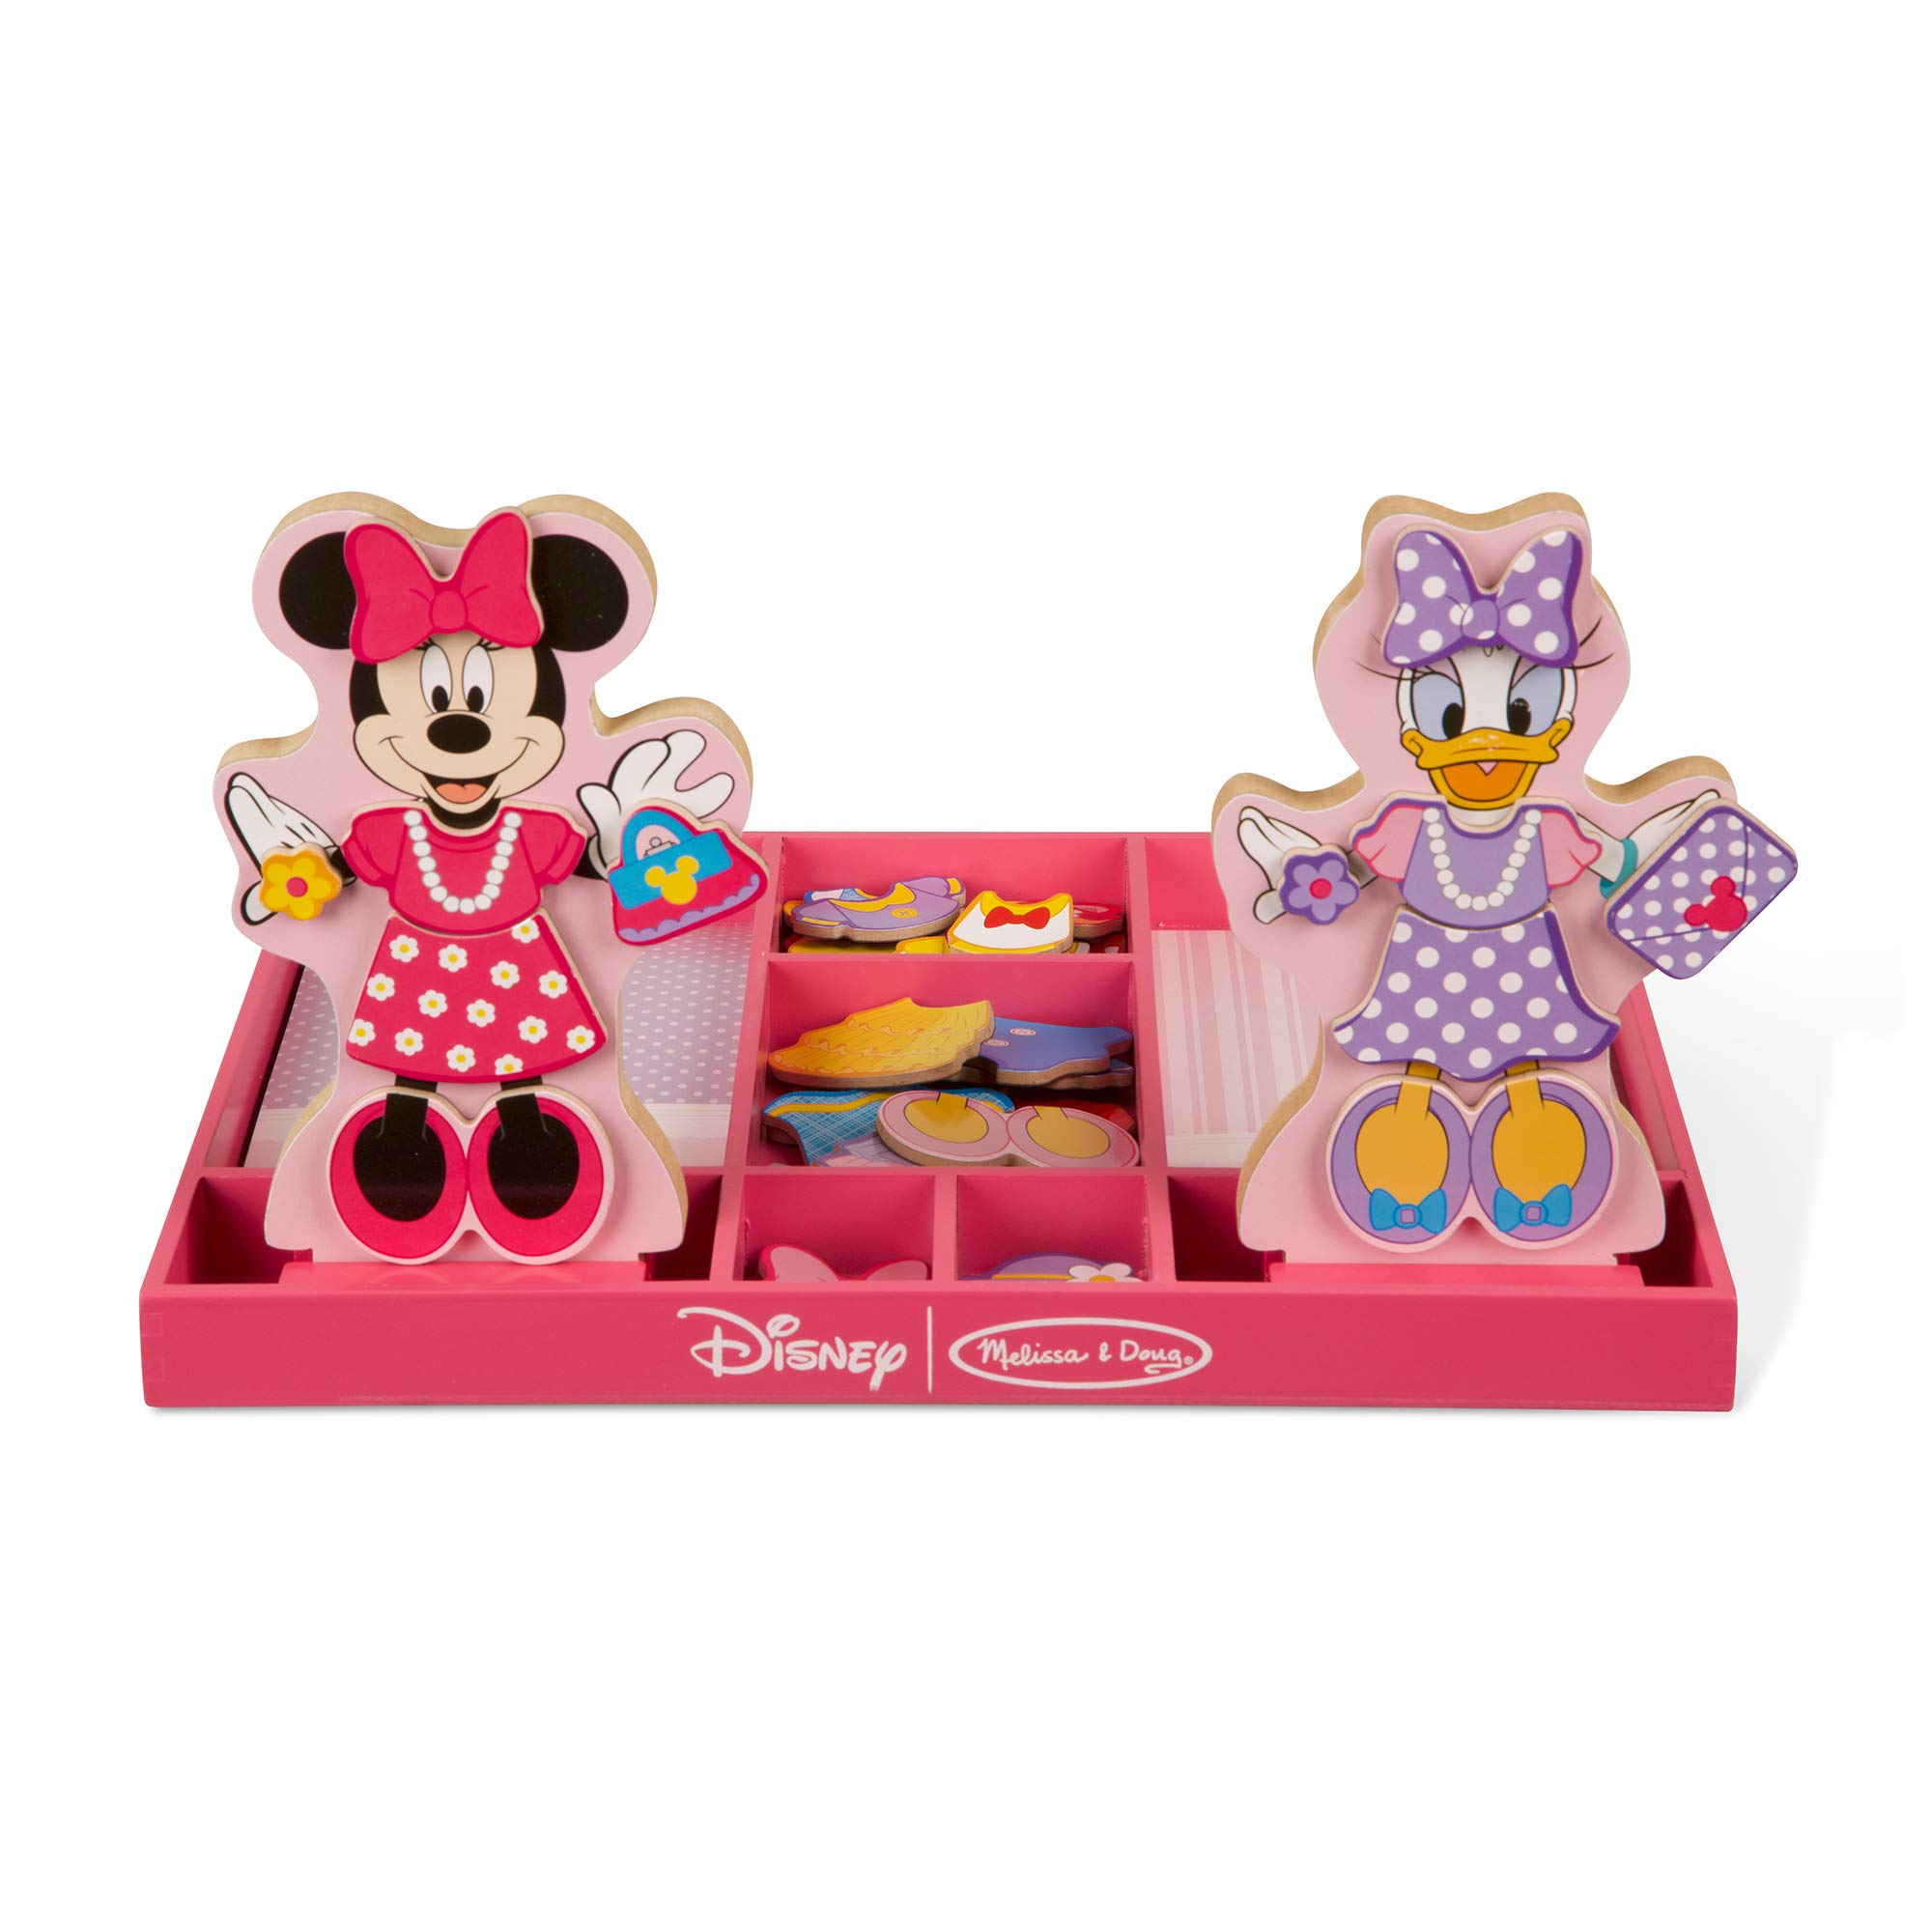 Melissa & Doug Disney Minnie Mouse and Daisy Duck Magnetic Dress-Up Wooden Doll (Pretend Play Set, Display Stands, Great Gift for Girls and Boys - Best for 3, 4, 5 Year Olds and Up) by Melissa & Doug